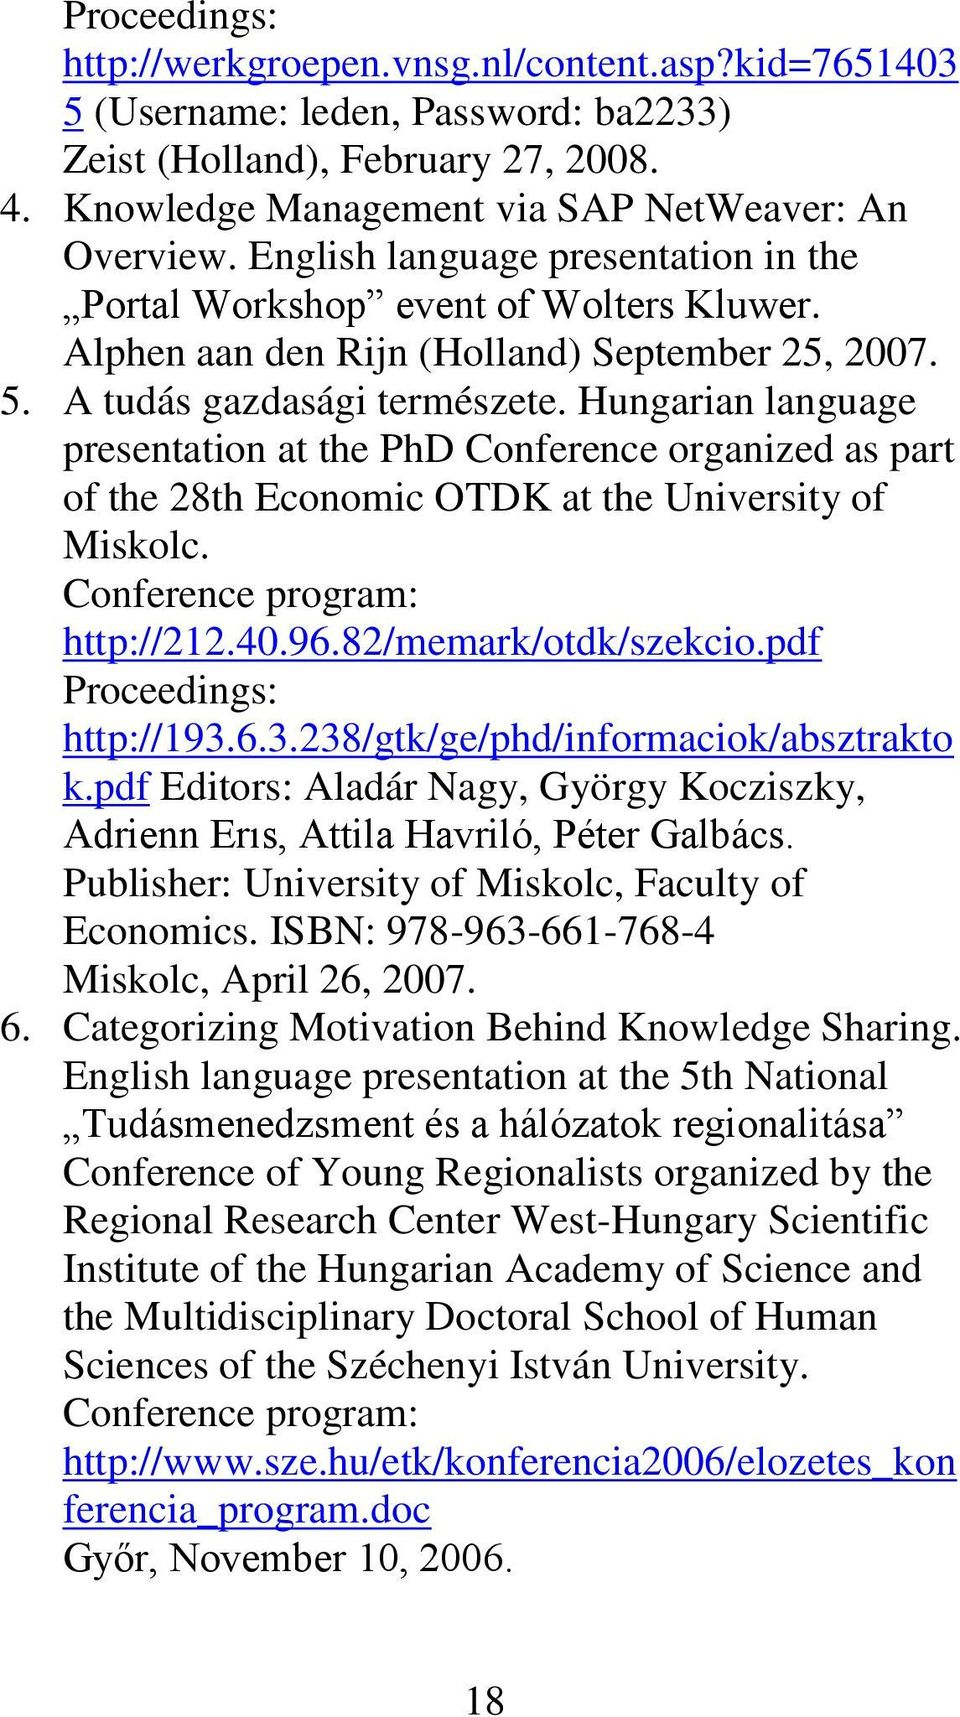 Hungarian language presentation at the PhD Conference organized as part of the 28th Economic OTDK at the University of Miskolc. Conference program: http://212.40.96.82/memark/otdk/szekcio.